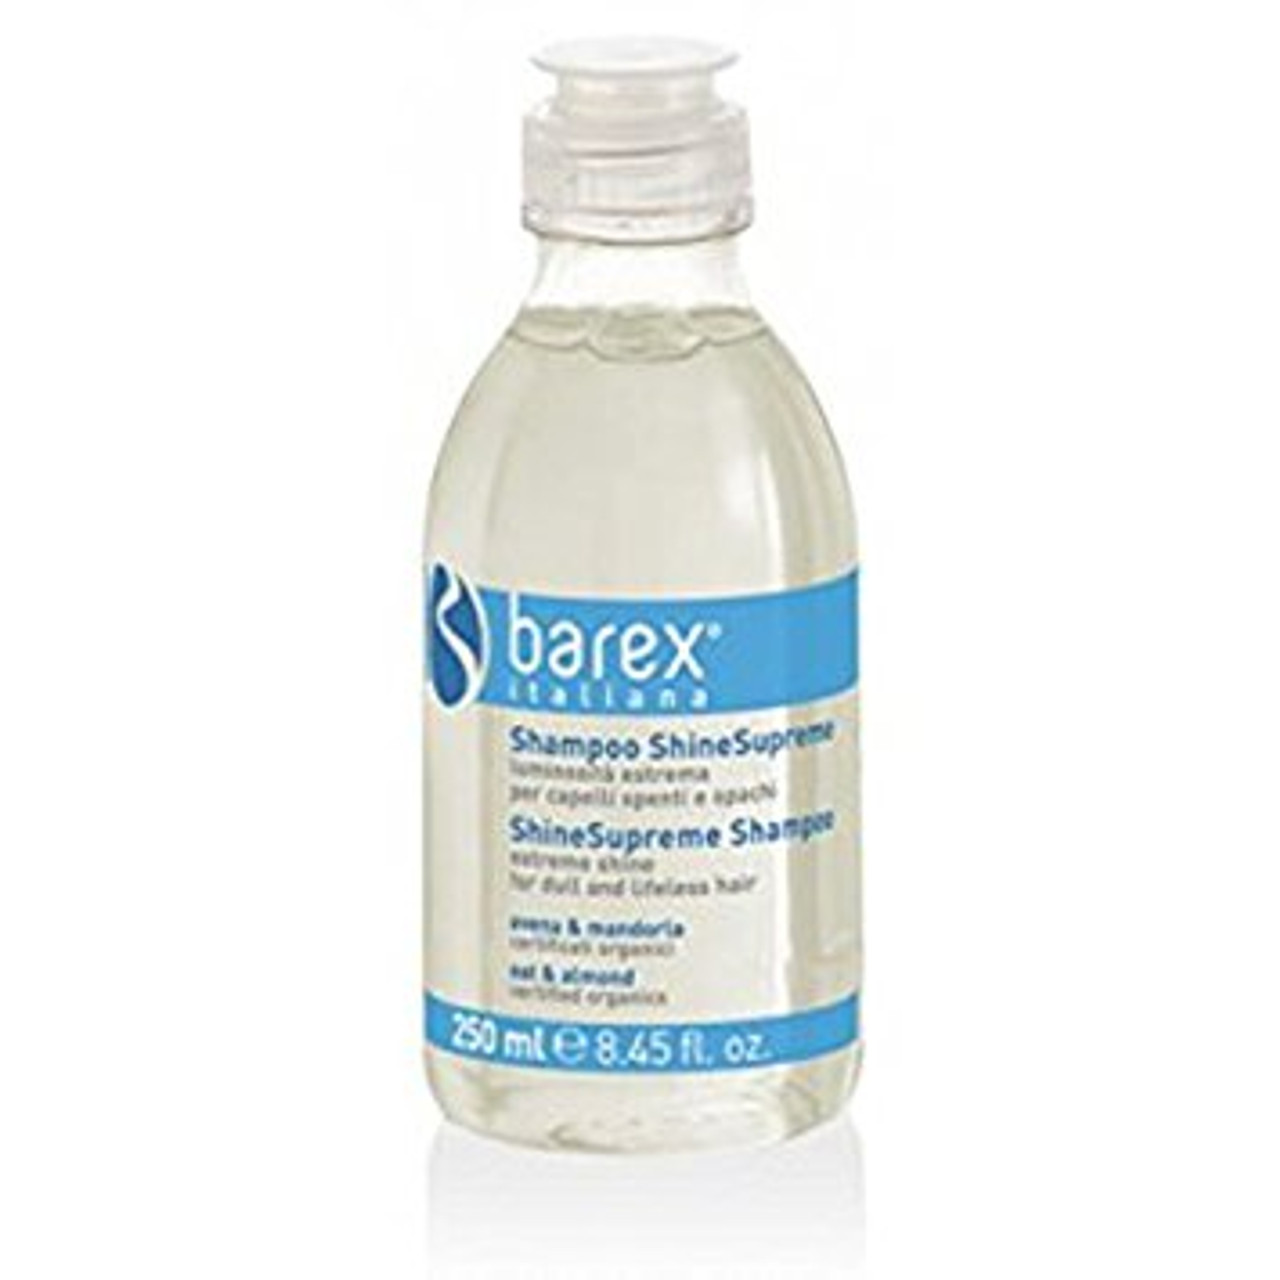 Barex Italiana Shine Supreme Shampoo, 8.45 fl oz (250 ml)